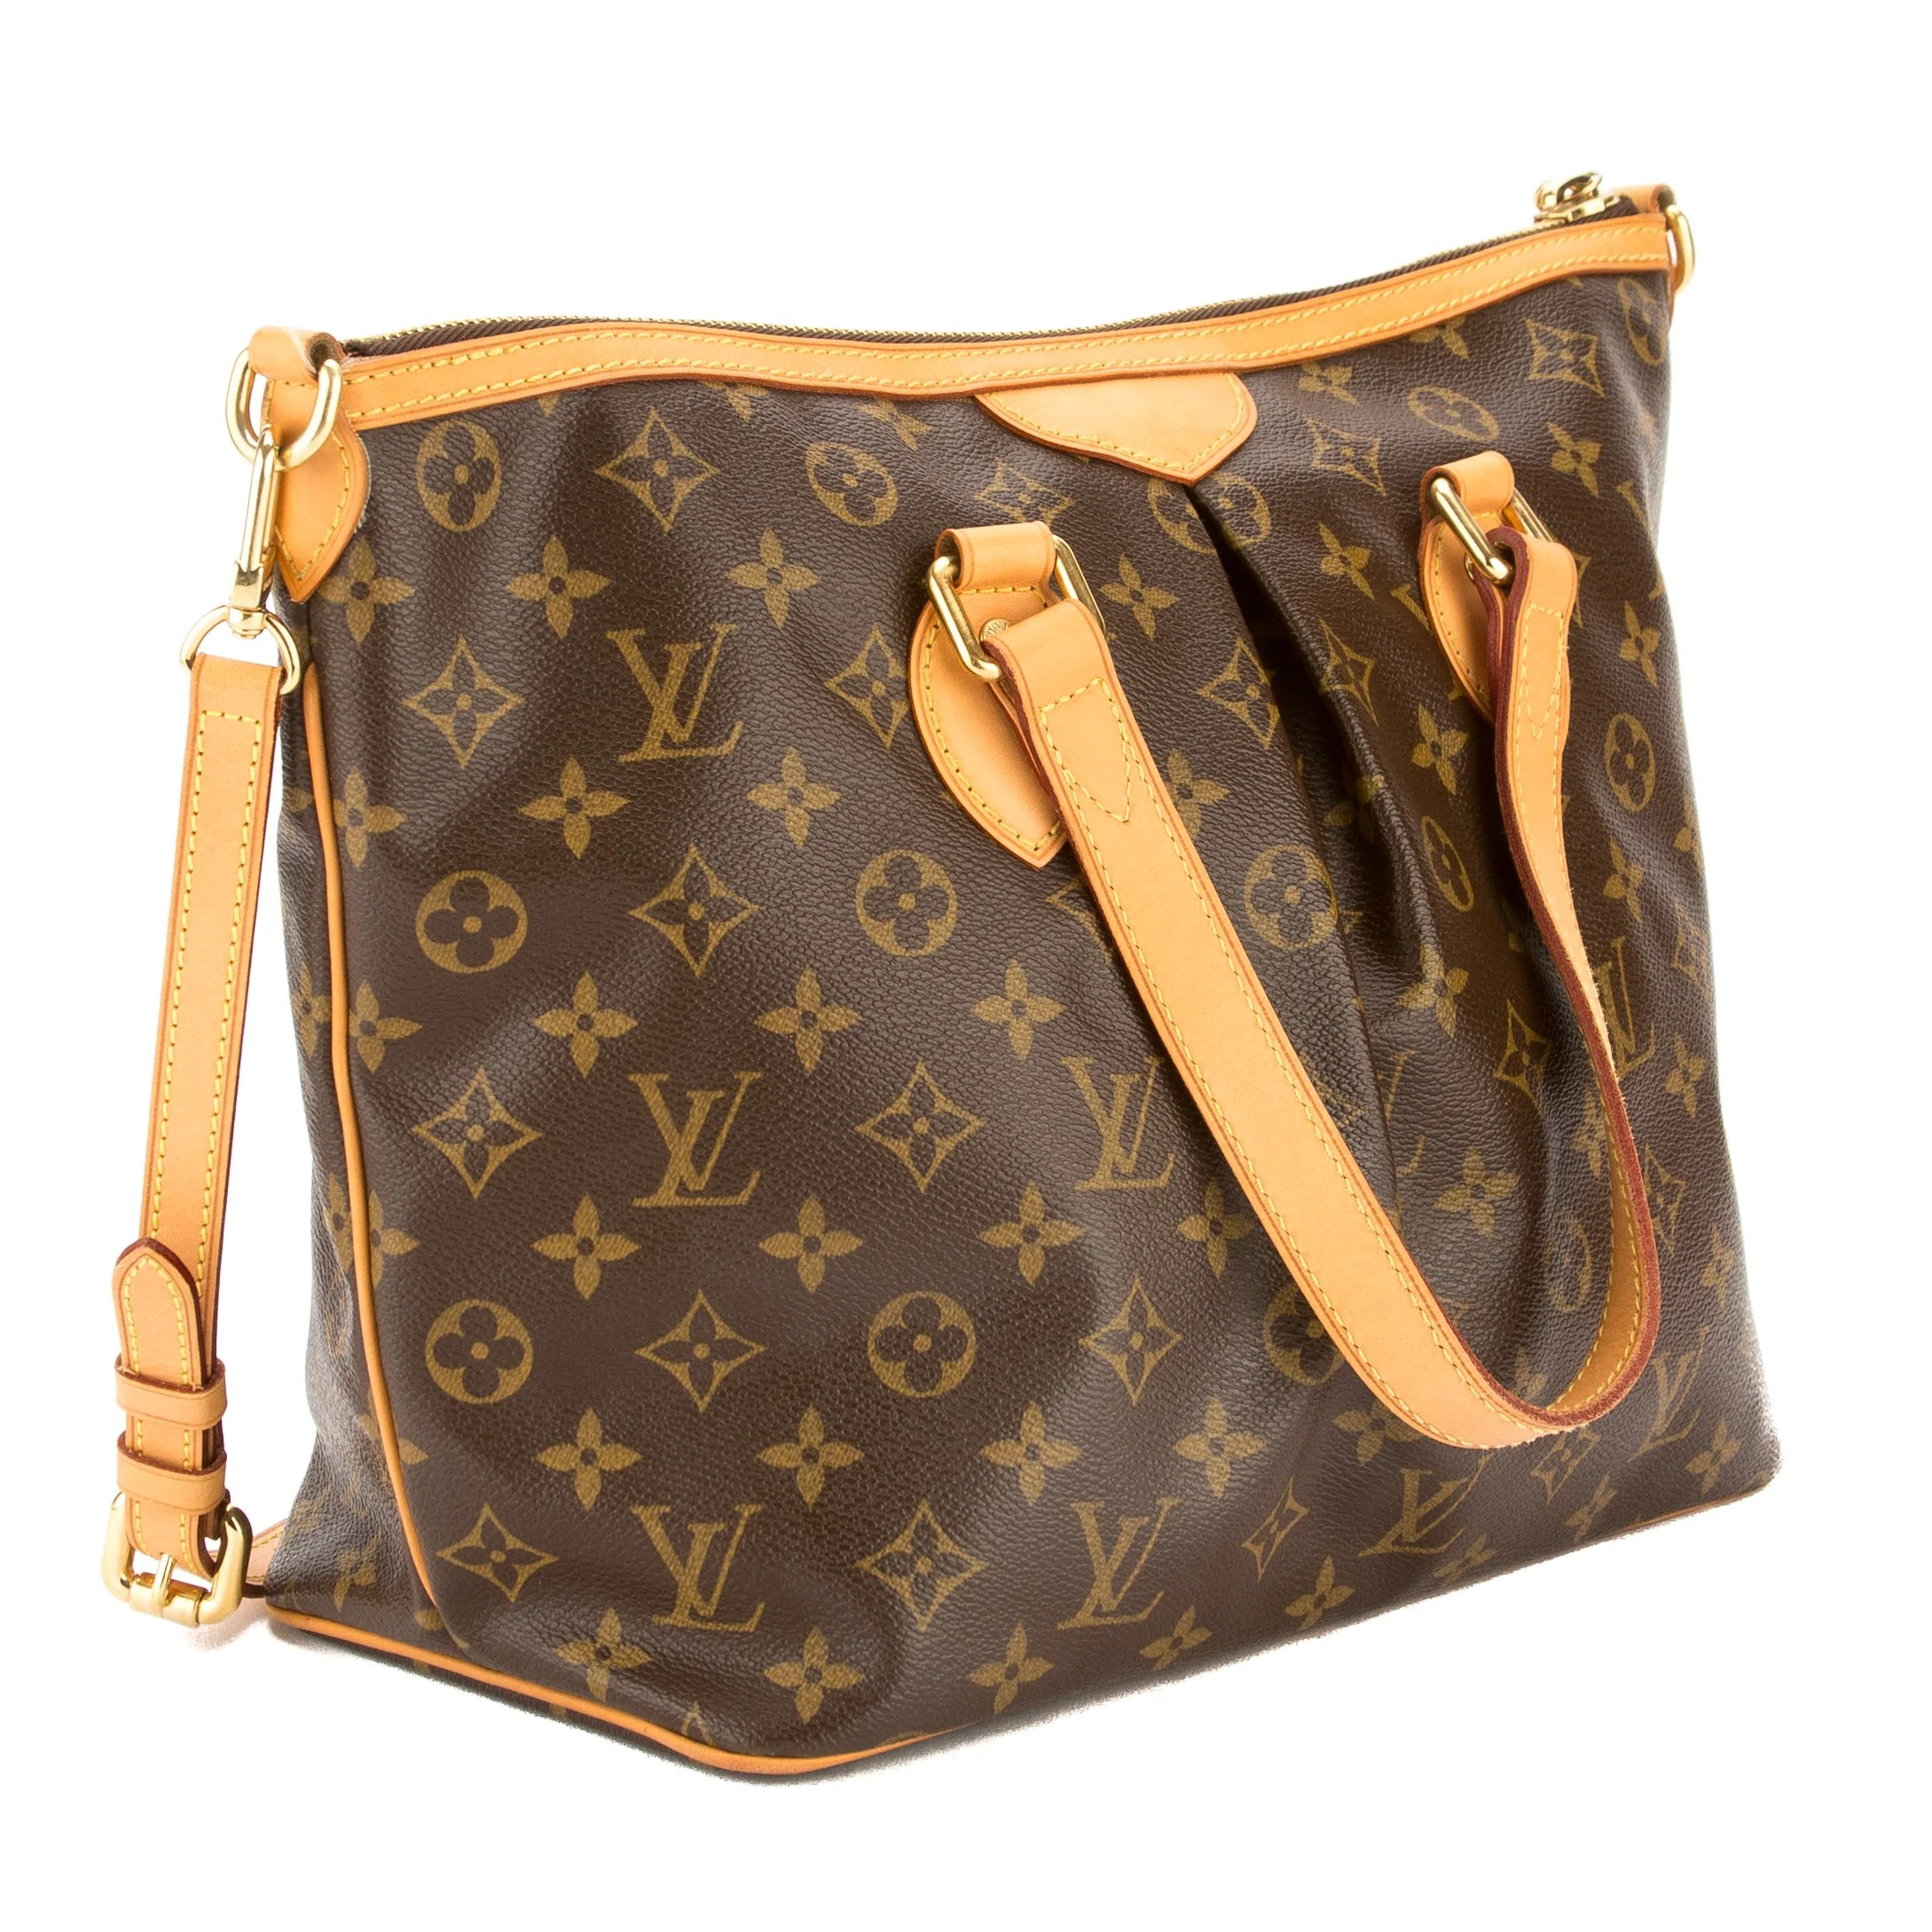 Louis Vuitton Tivoli Vs Palermo Louis Vuitton Monogram Canvas Palermo Pm Bag Pre Owned